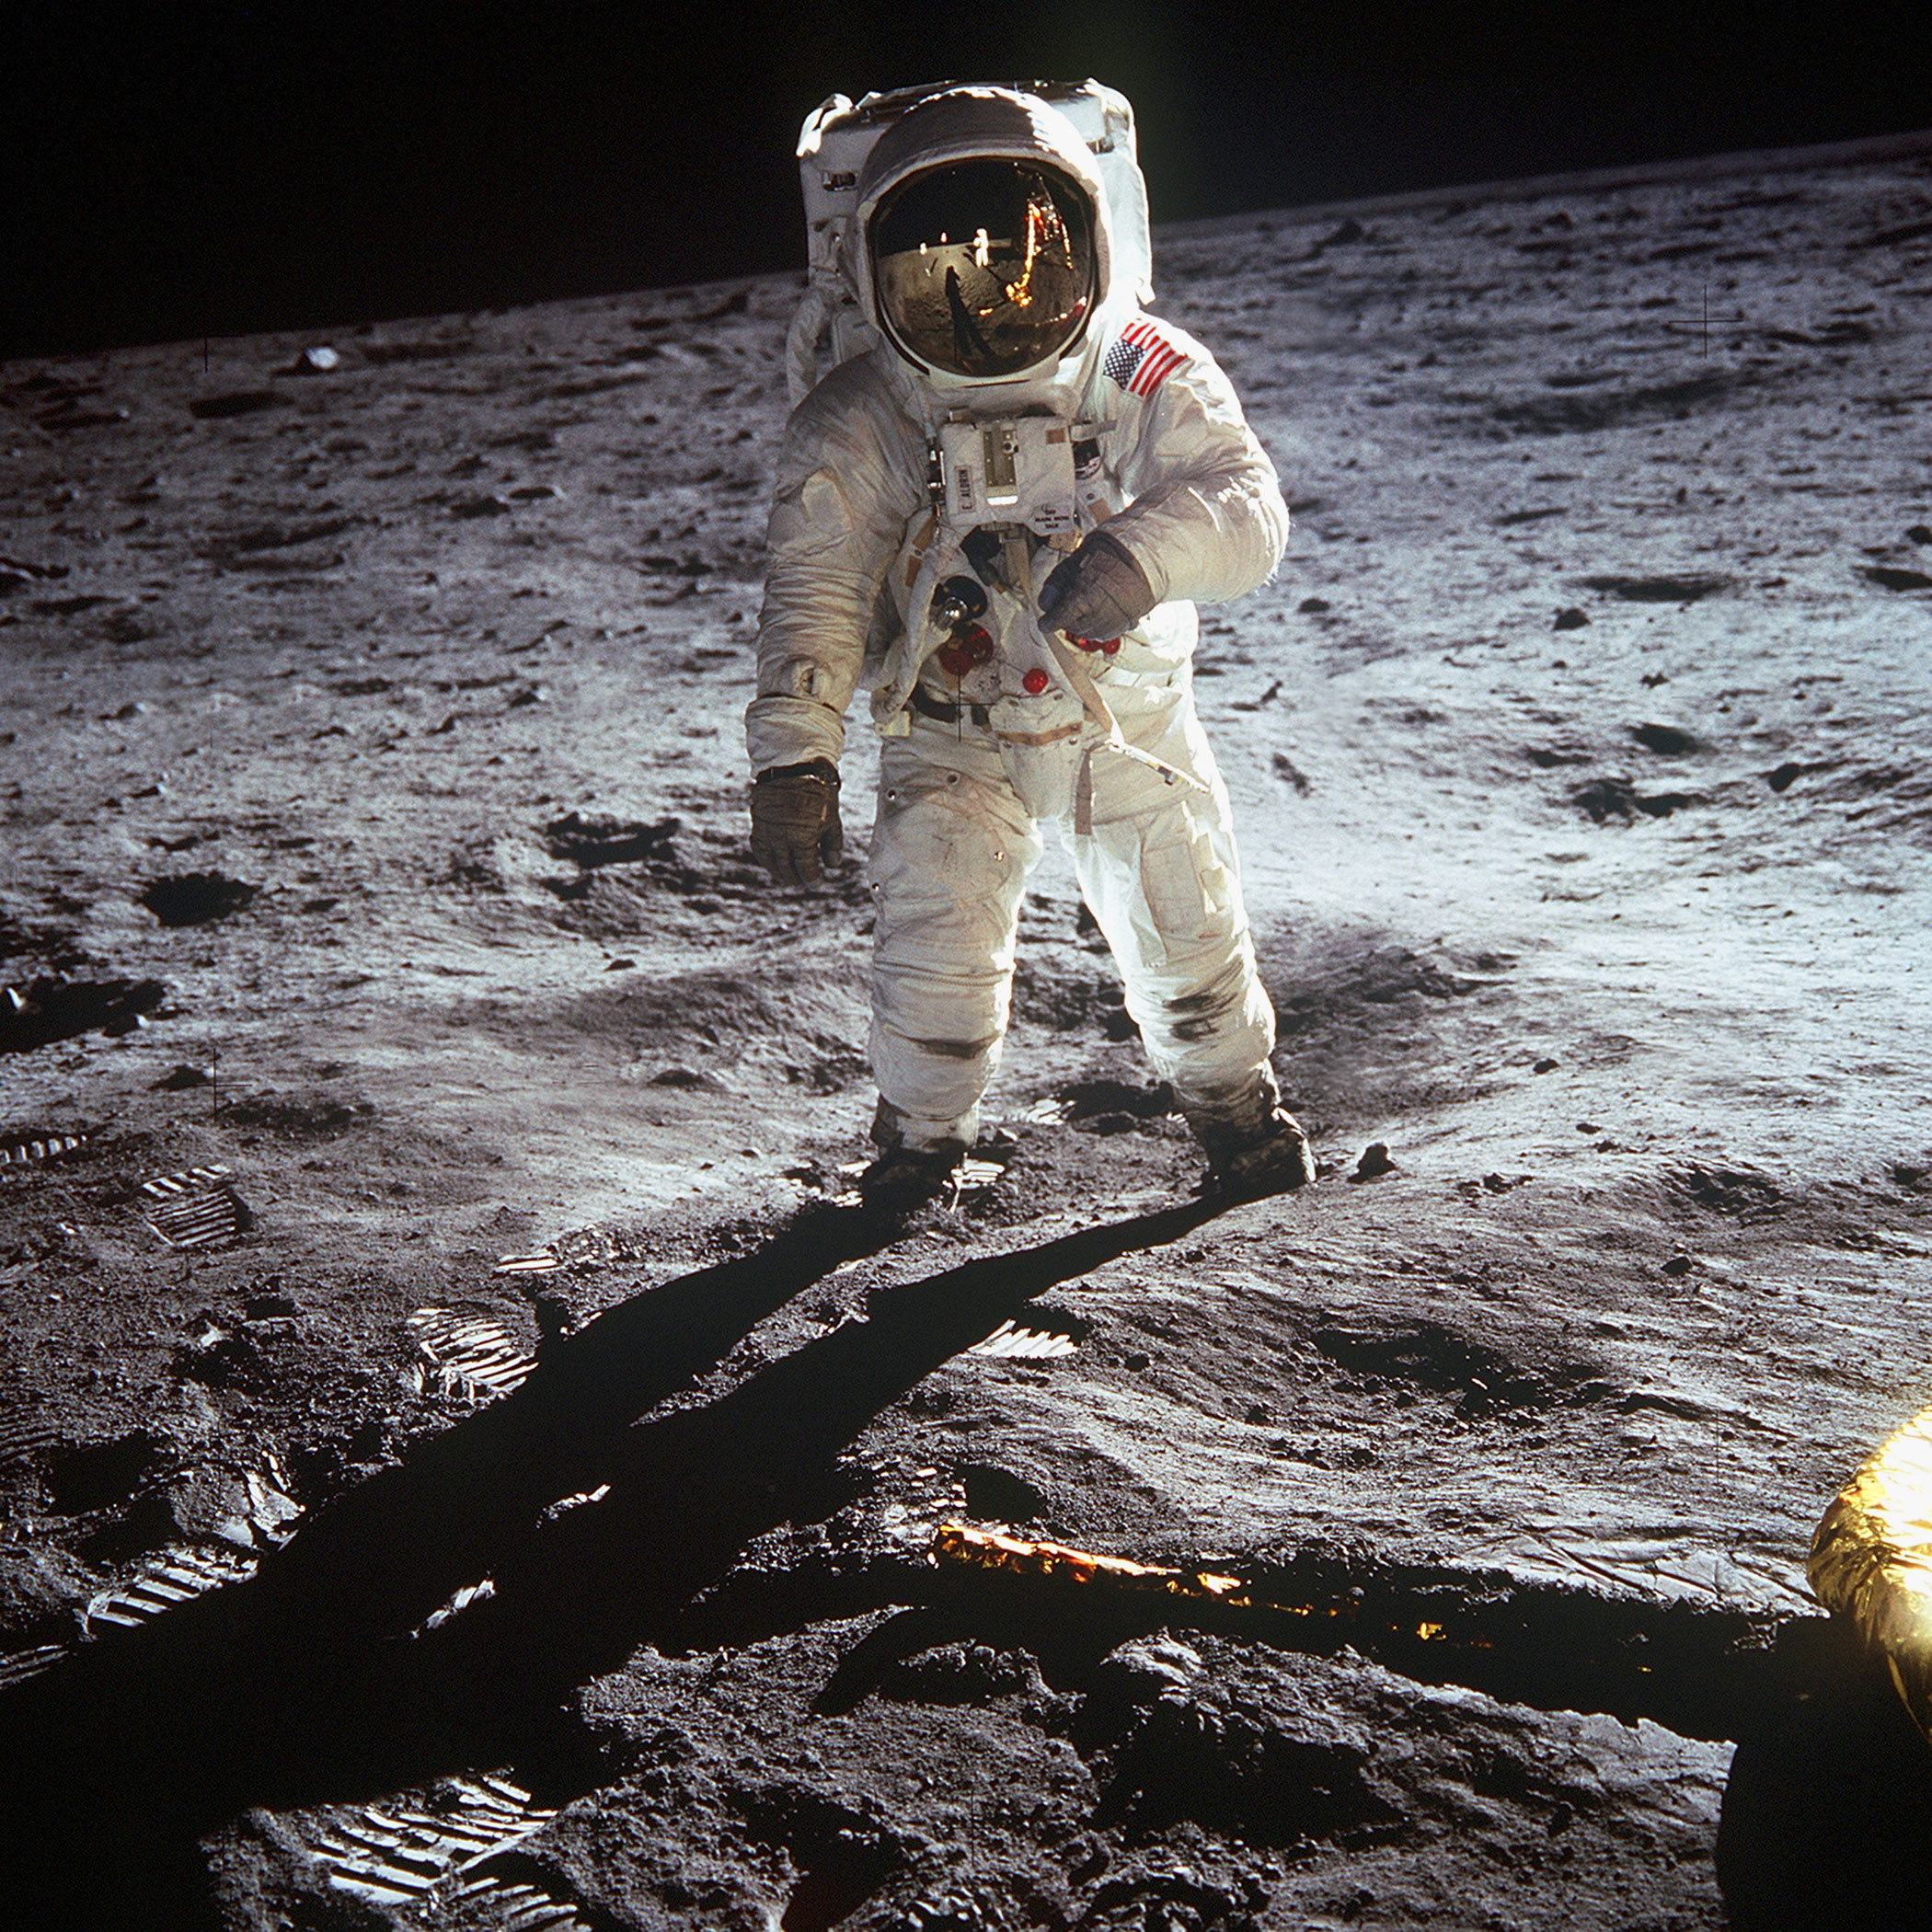 "<b>First Steps on the Moon, 1969</b>; American astronaut Edwin ""Buzz"" Aldrin walking on the moon on July 20, 1969 during the Apollo 11 mission."